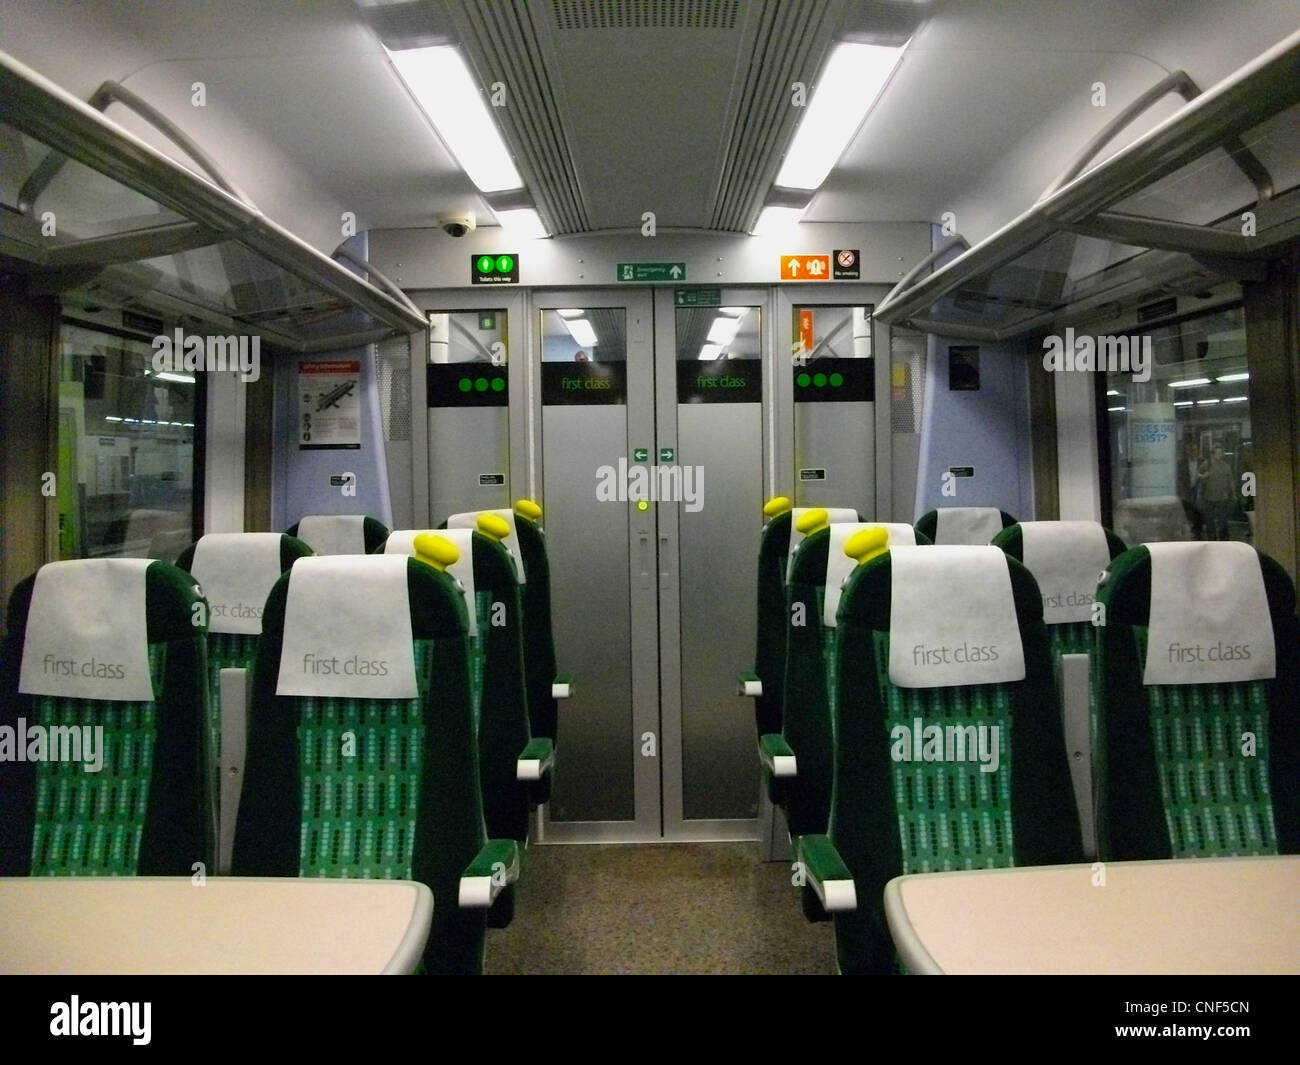 The first class interior of a london midland